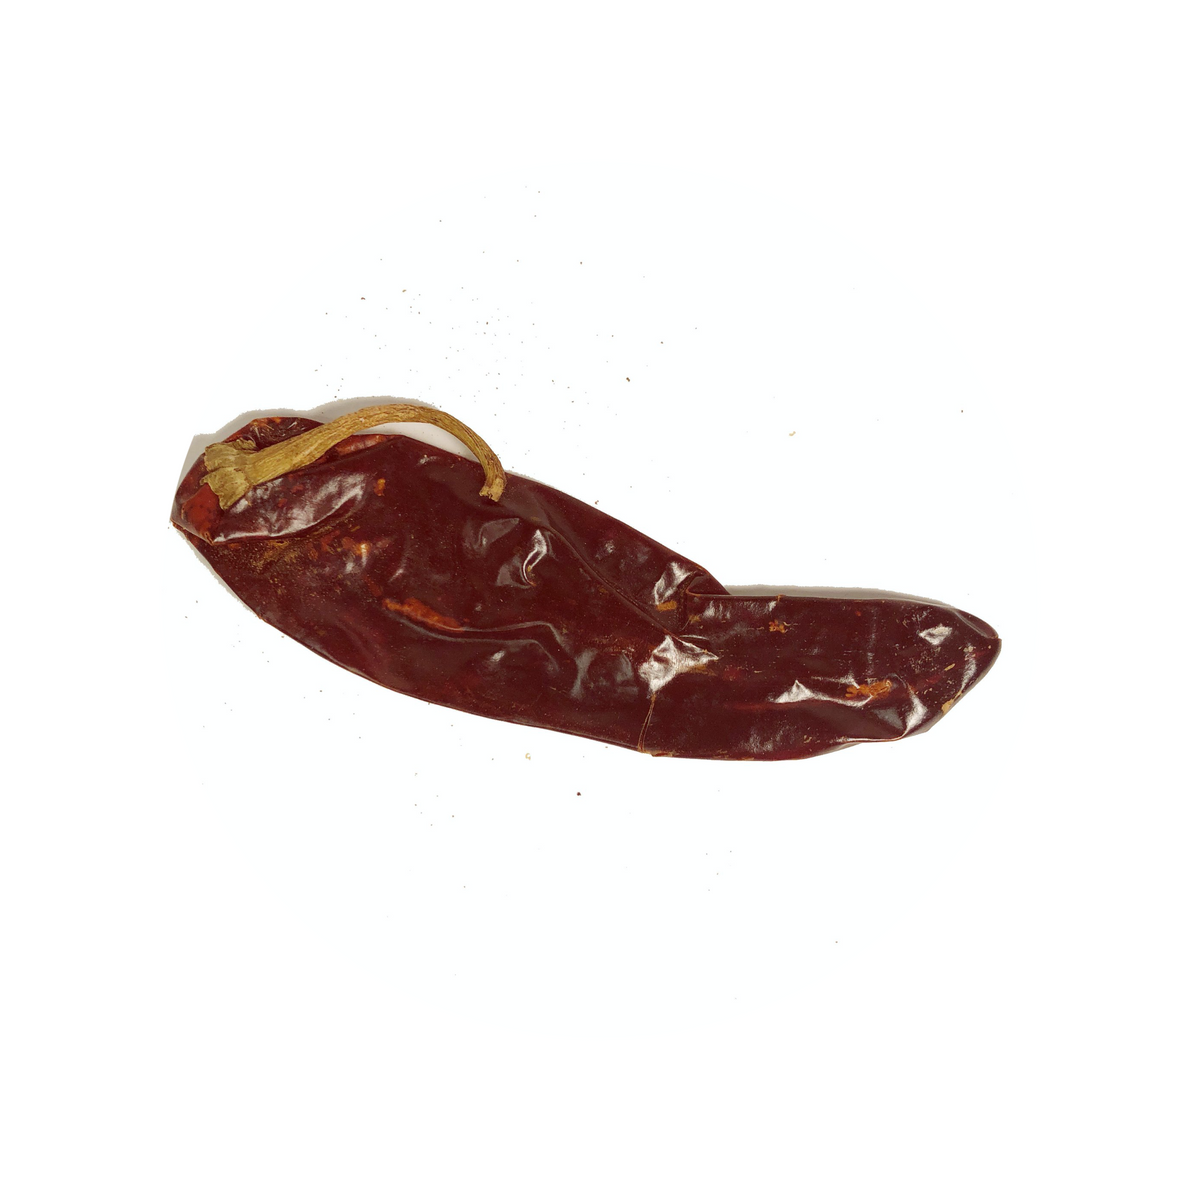 Chili Guajillo whole